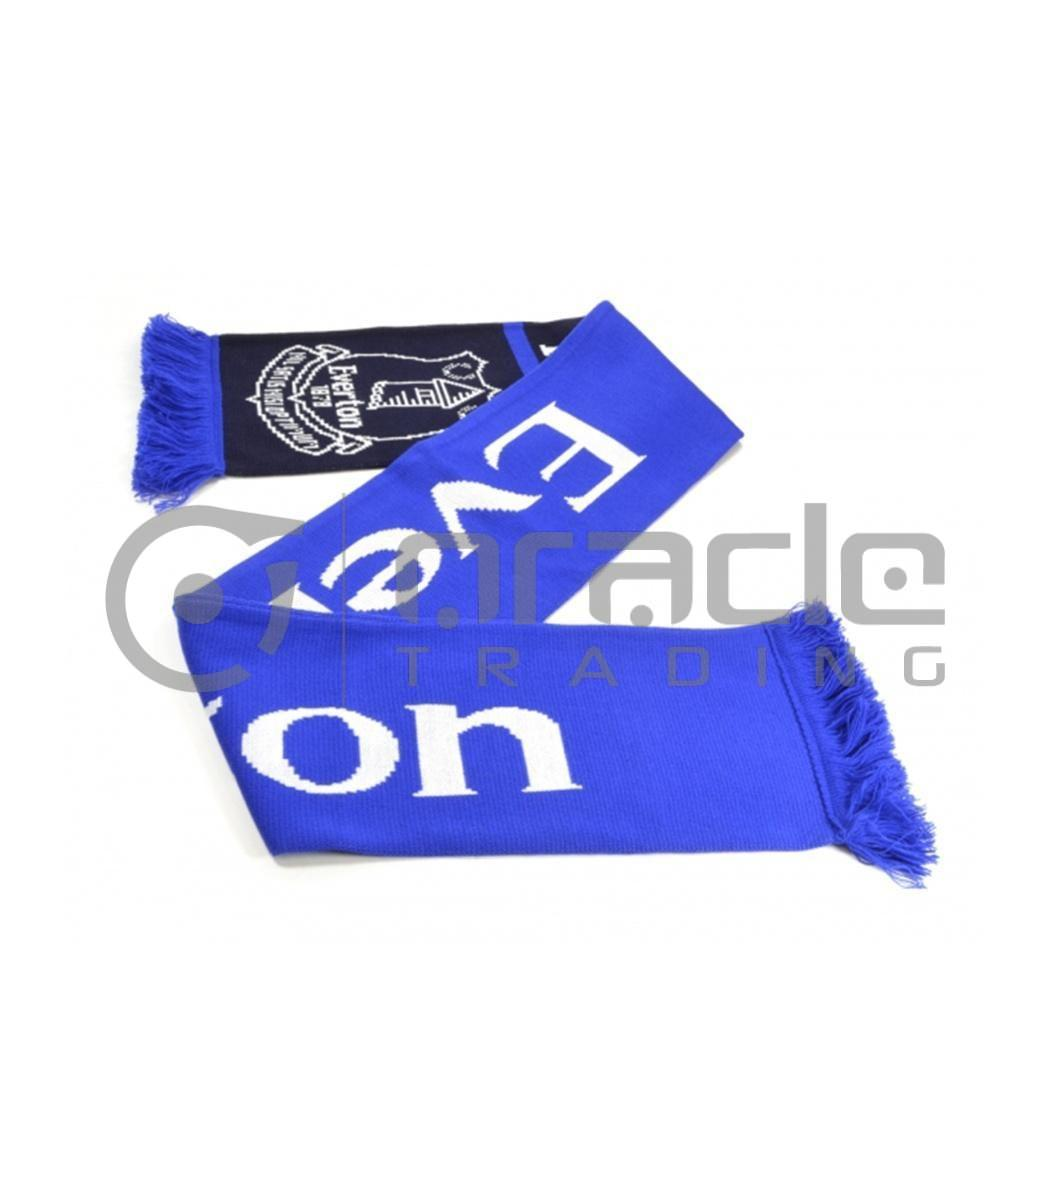 Everton Knitted Scarf - UK Made